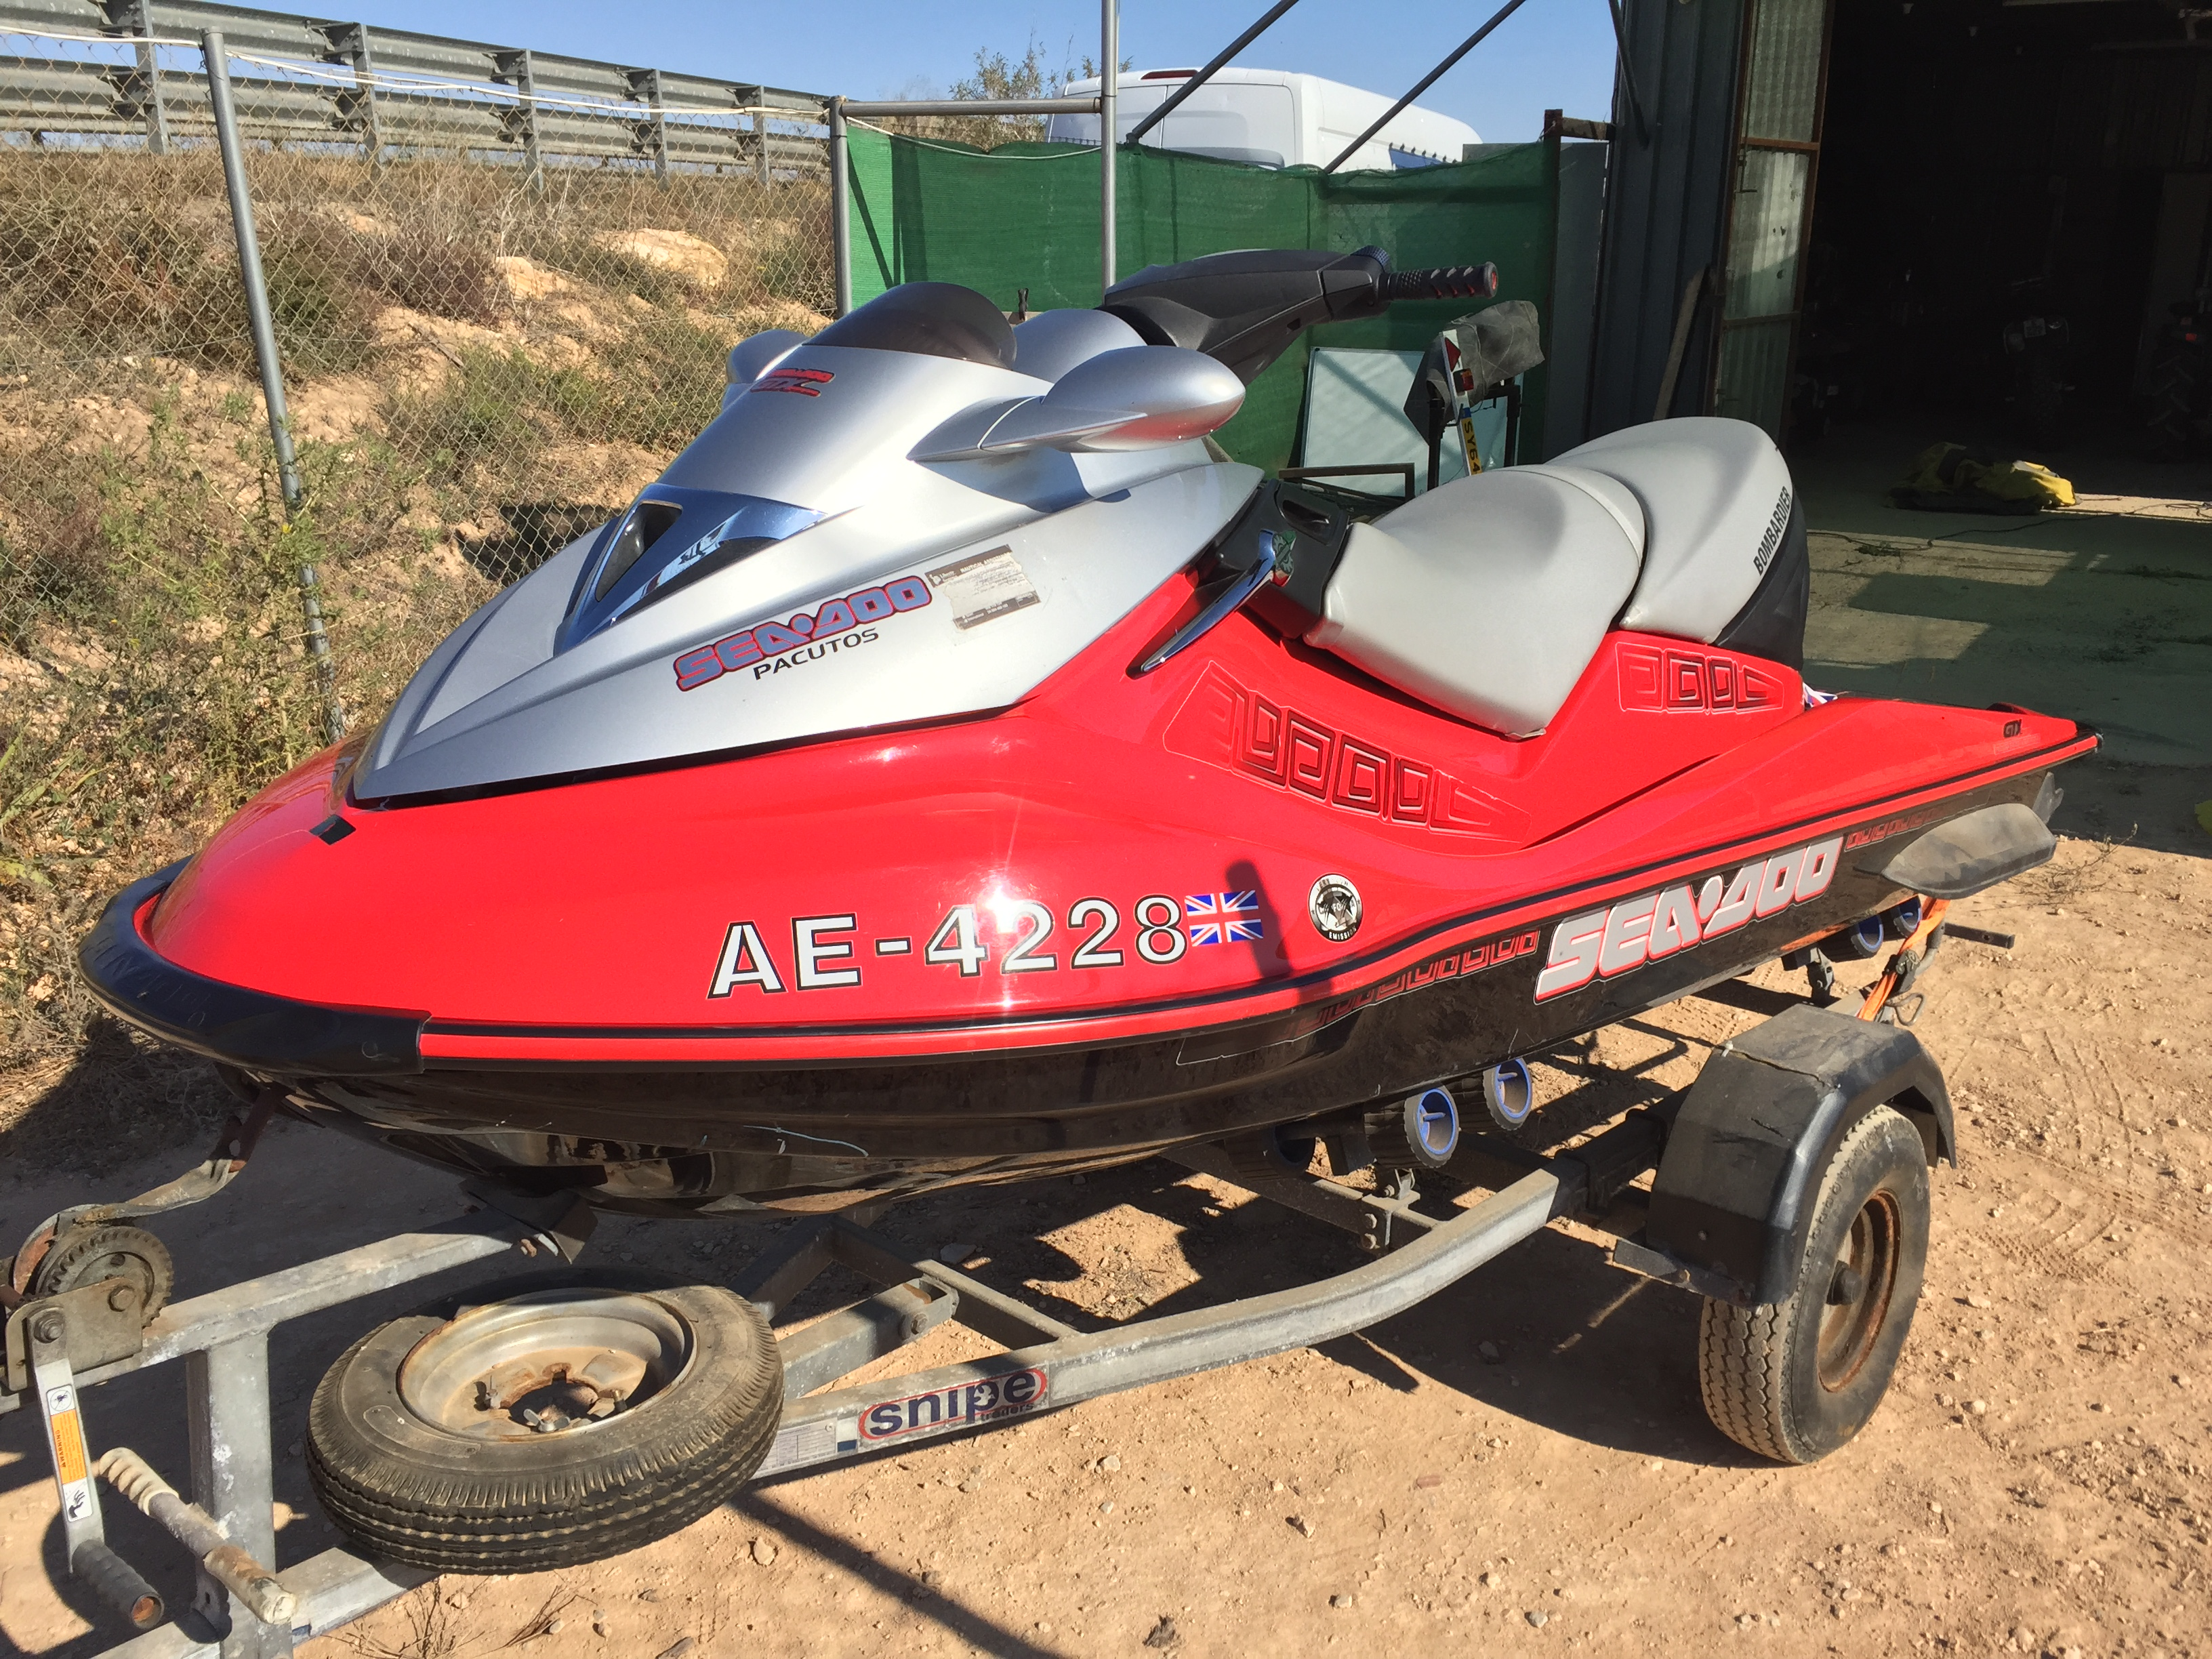 For sale: SEADOO JETSKI 4 STROKE only 76 hours - Buy and